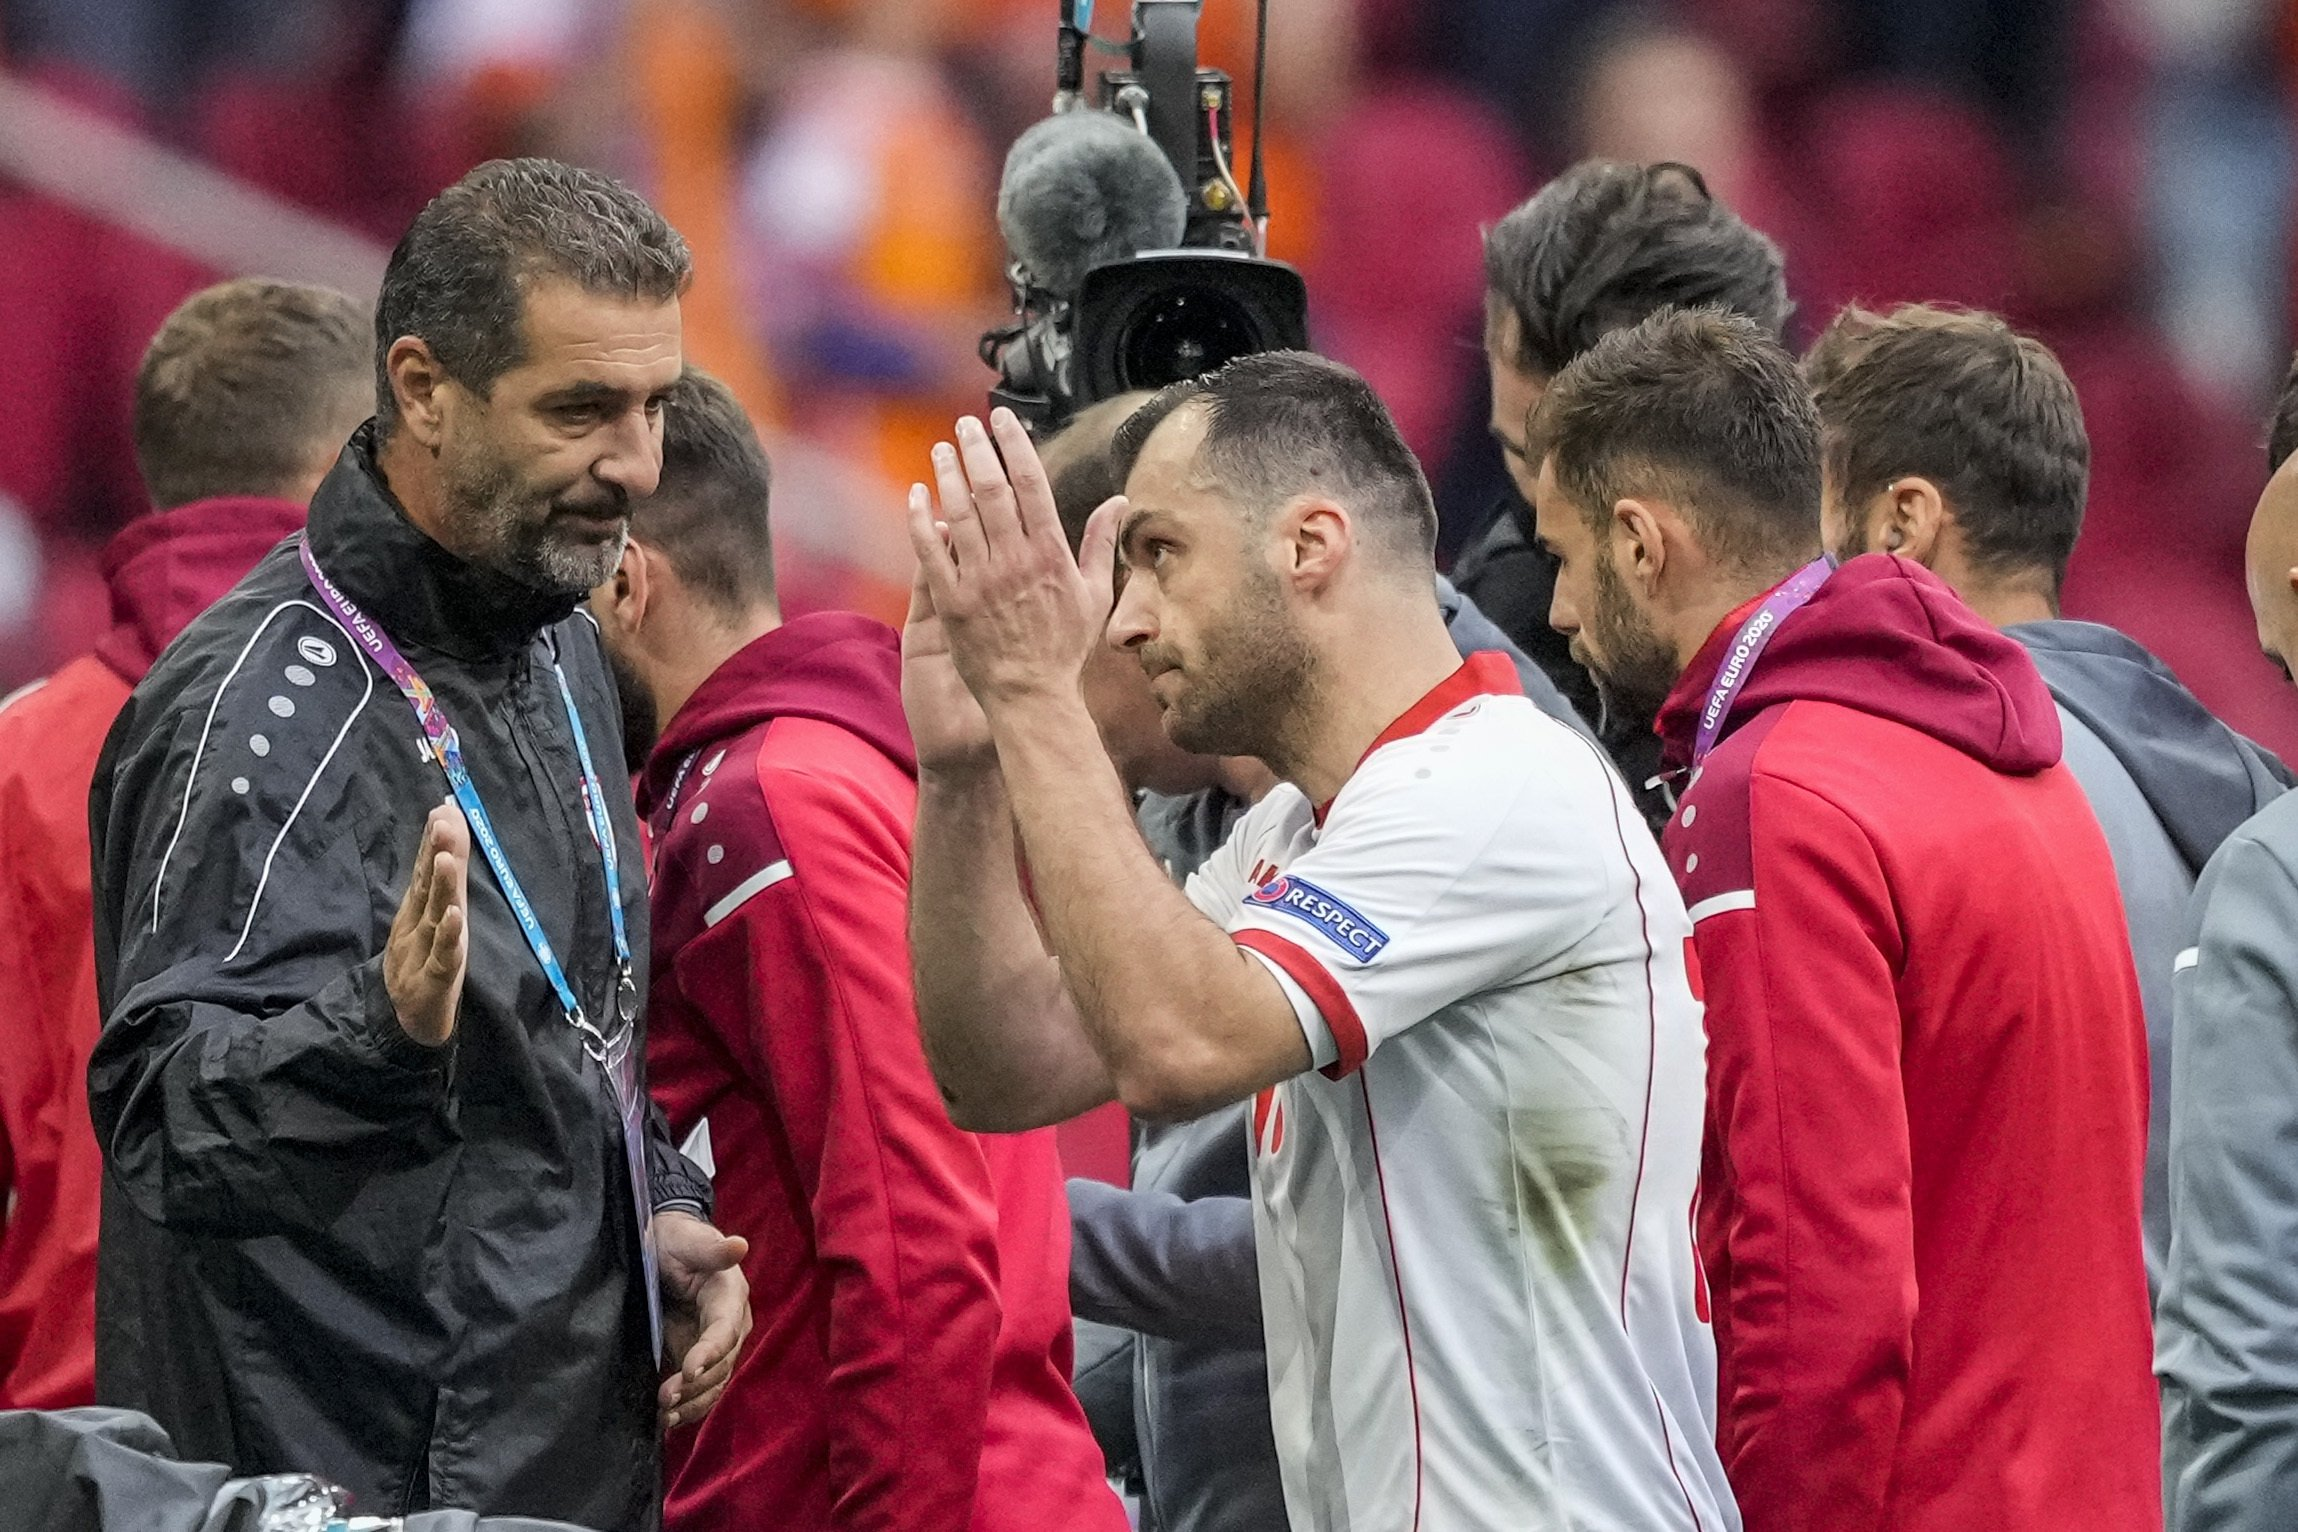 North Macedonia's Goran Pandev (C), leaves the pitch during a UEFA Euro 2020 Group C match against the Netherlands at Johan Cruijff Arena in Amsterdam, Netherlands, June 21, 2021. (AP Photo/Peter Dejong/Pool)